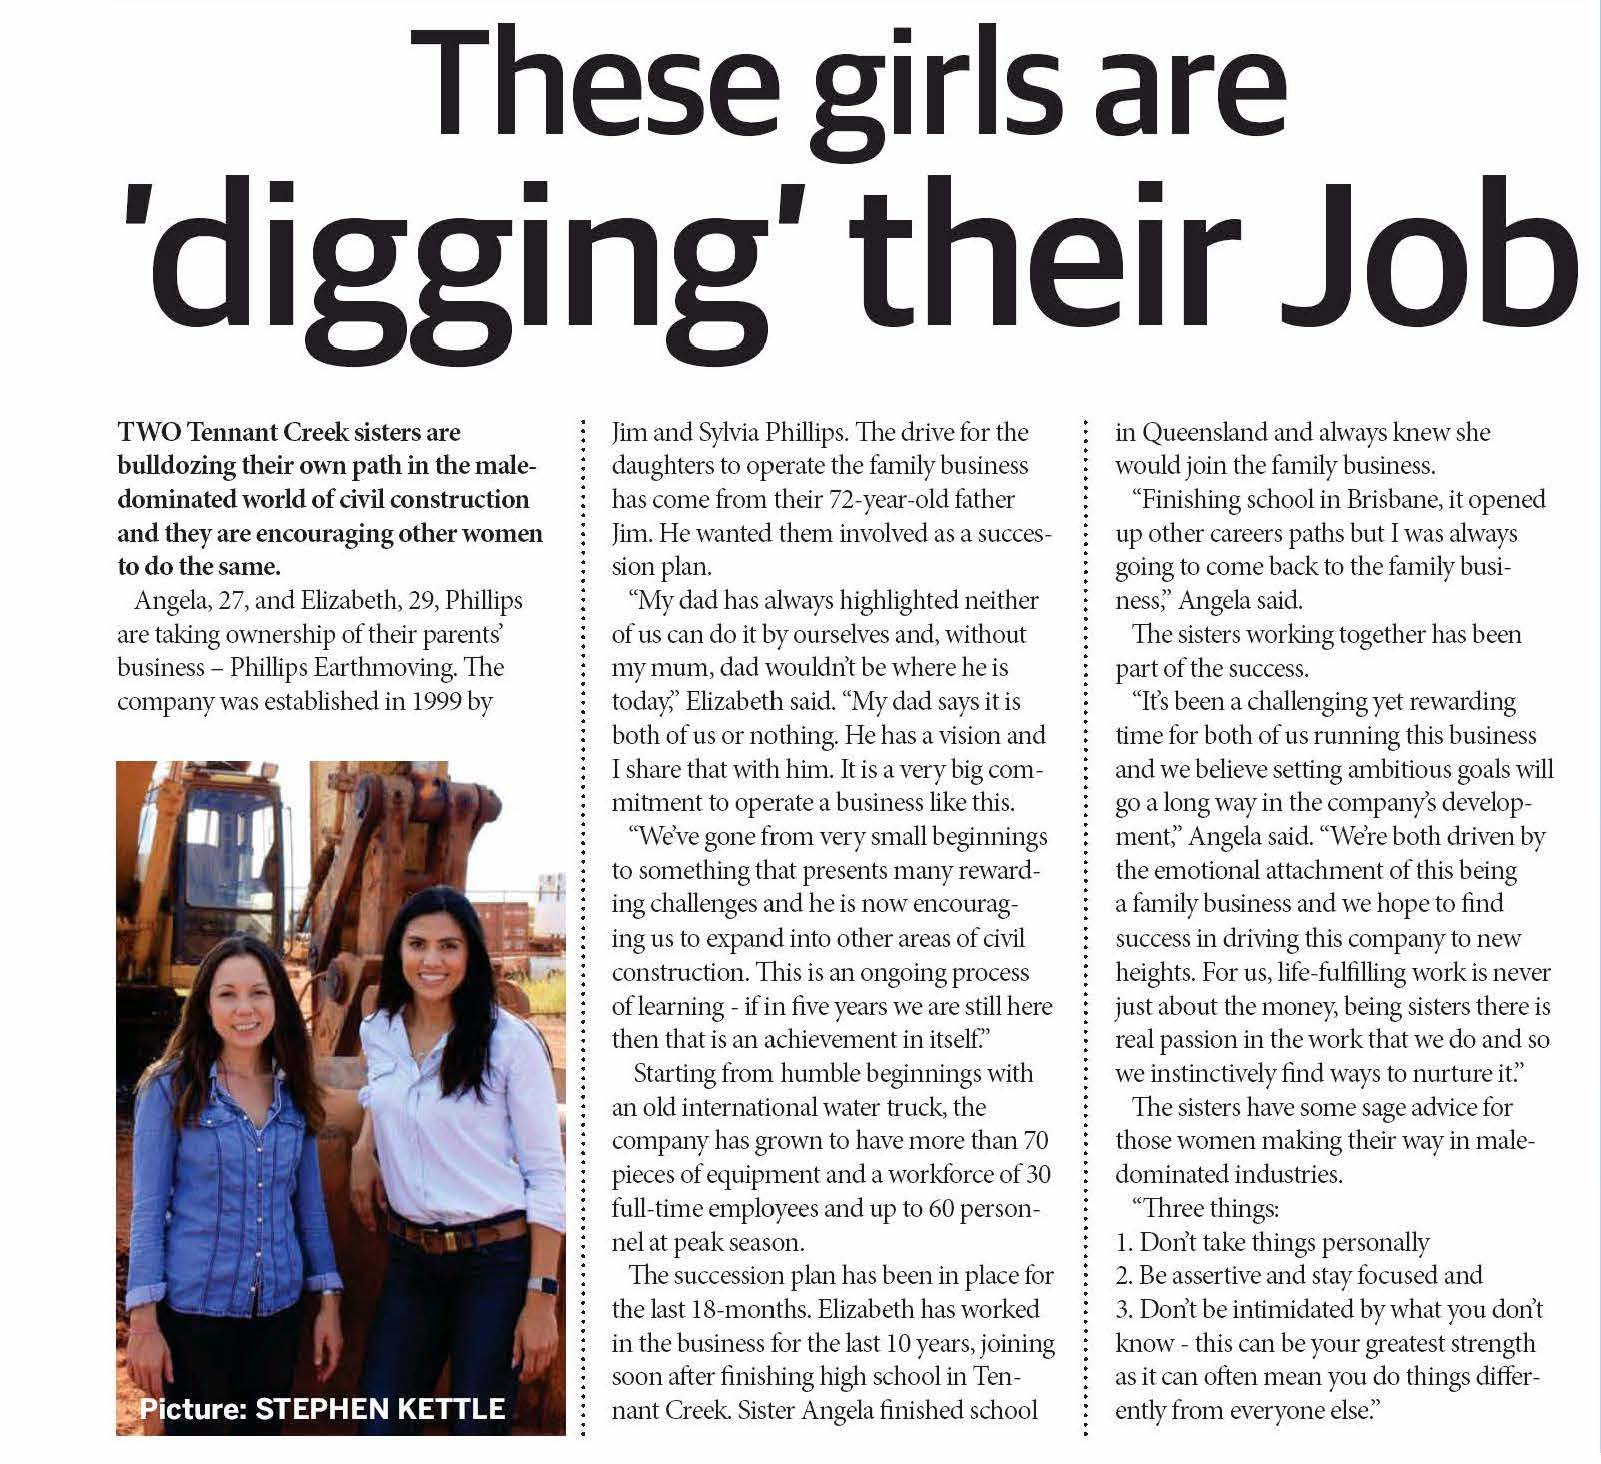 Nt News Business Review - These Girls Are Digging Their job